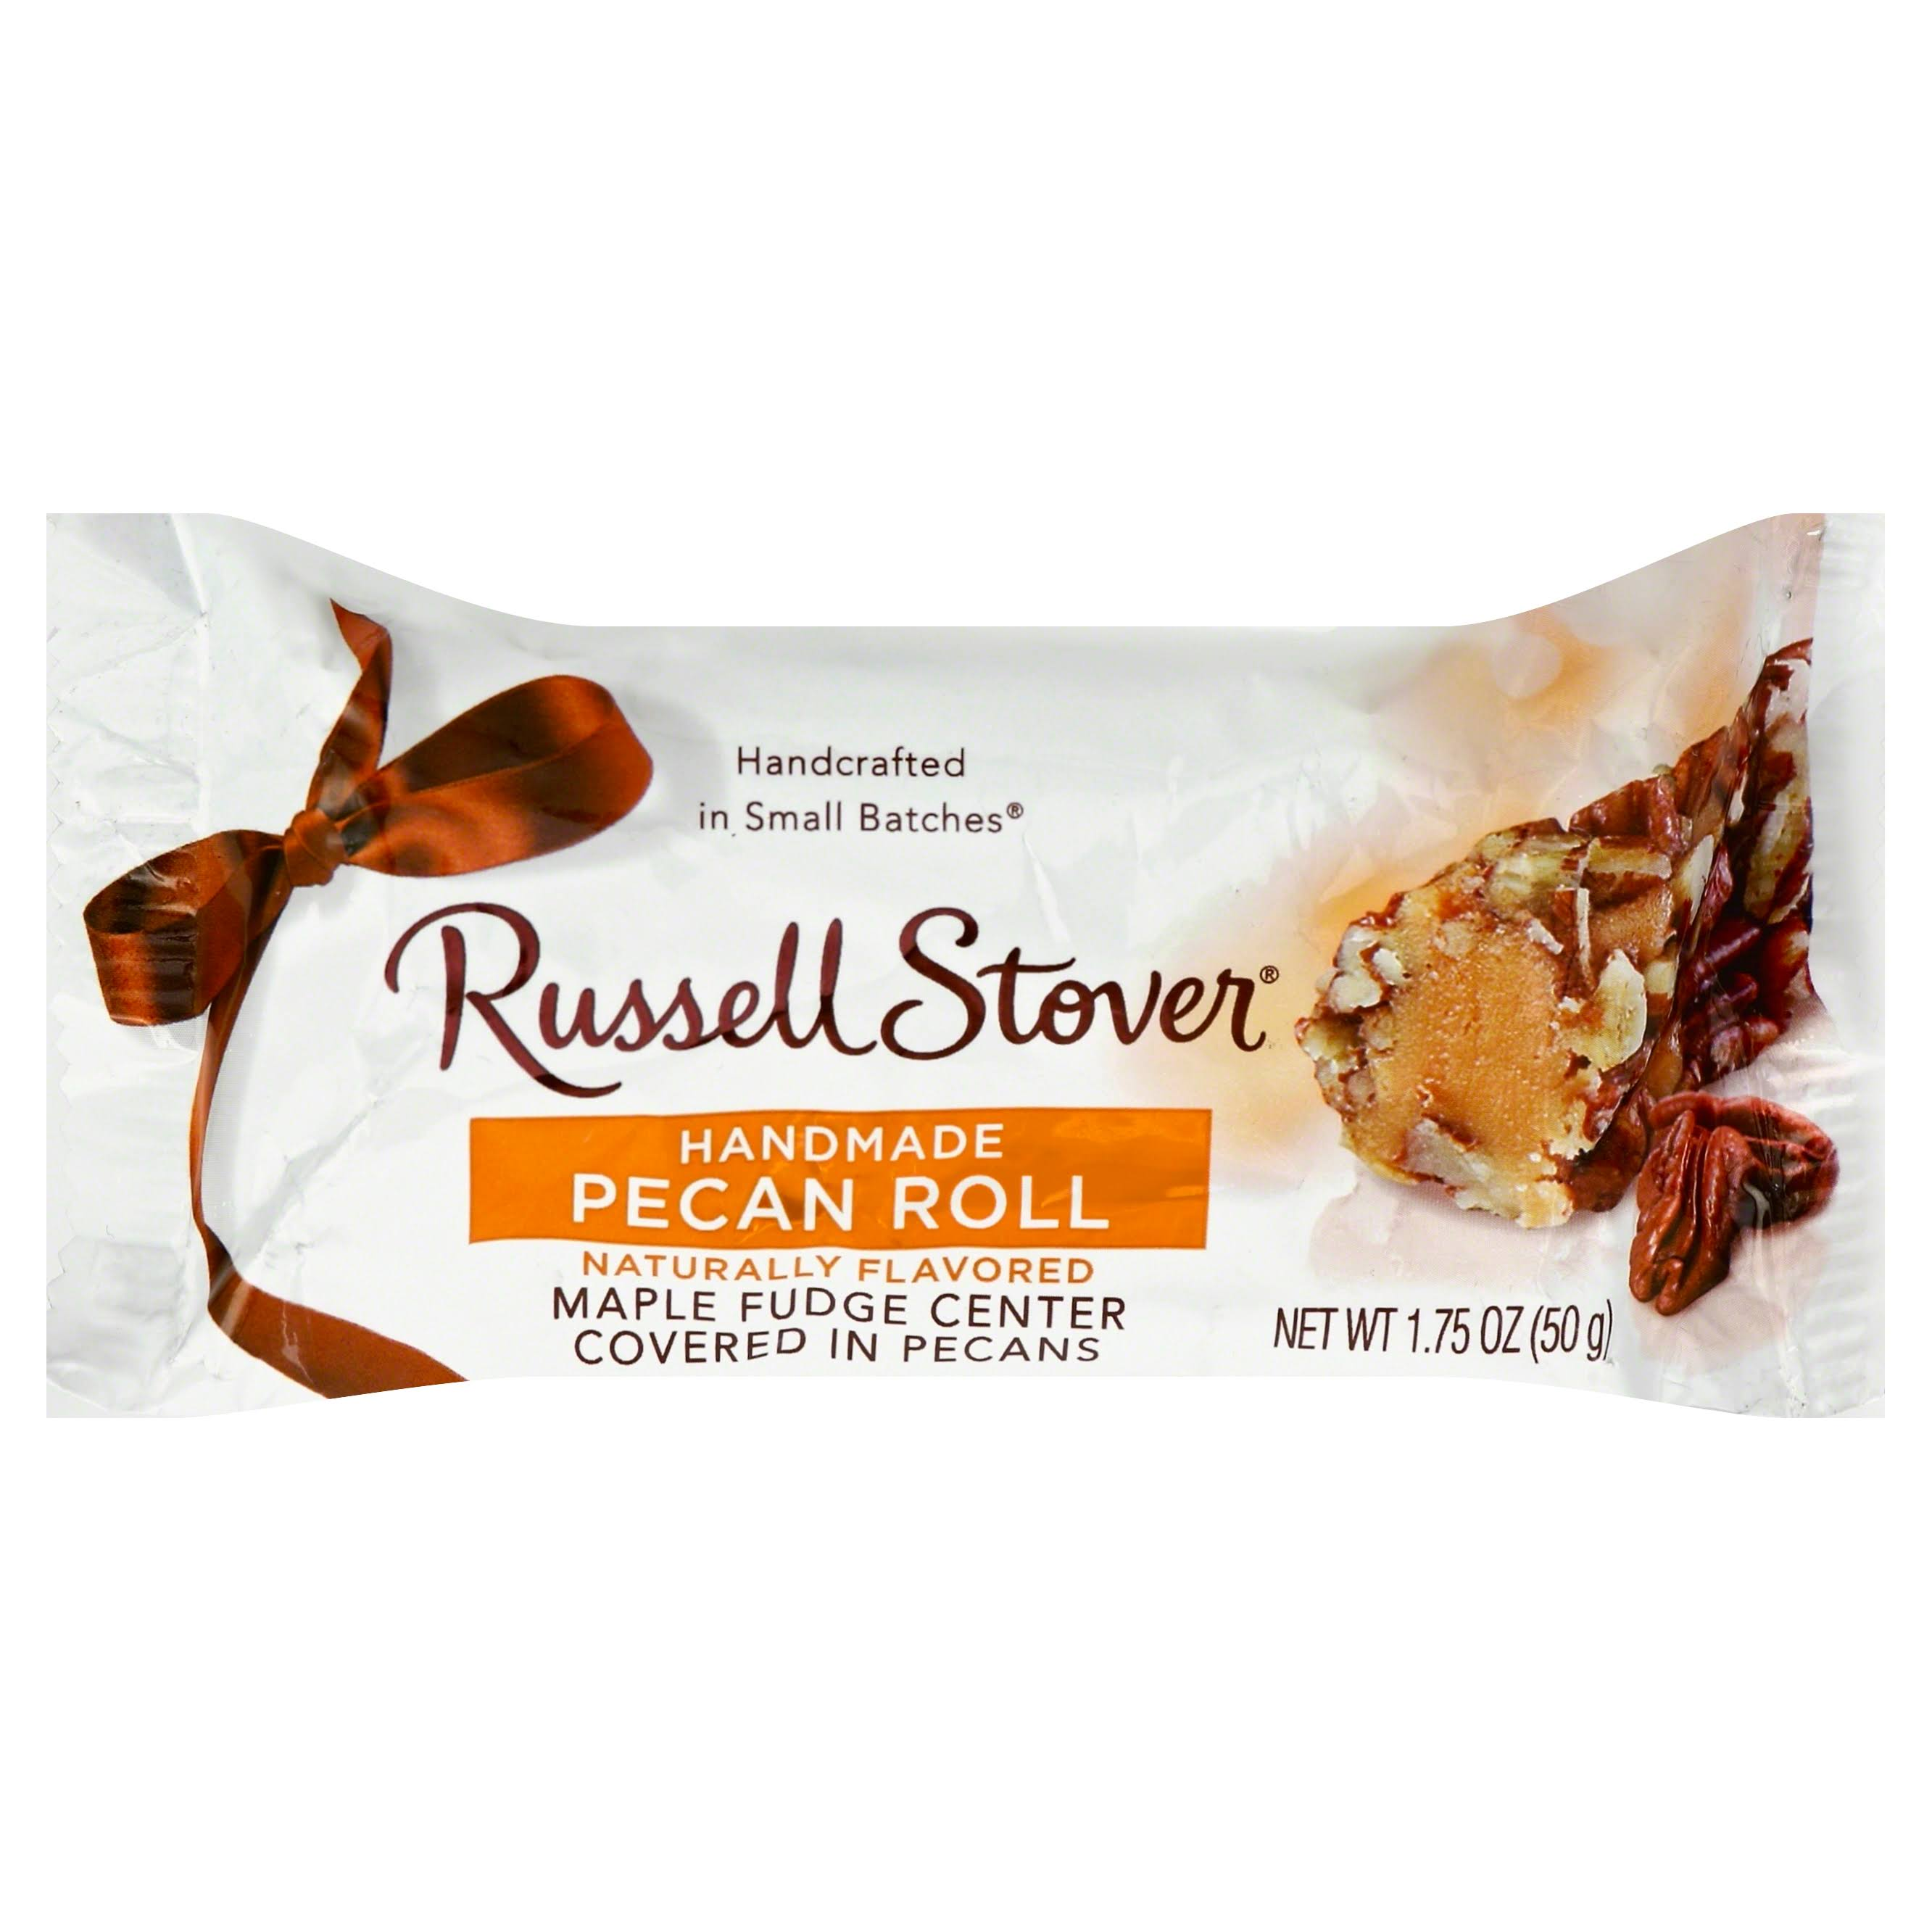 Russell Stover Vermont Pecan Roll